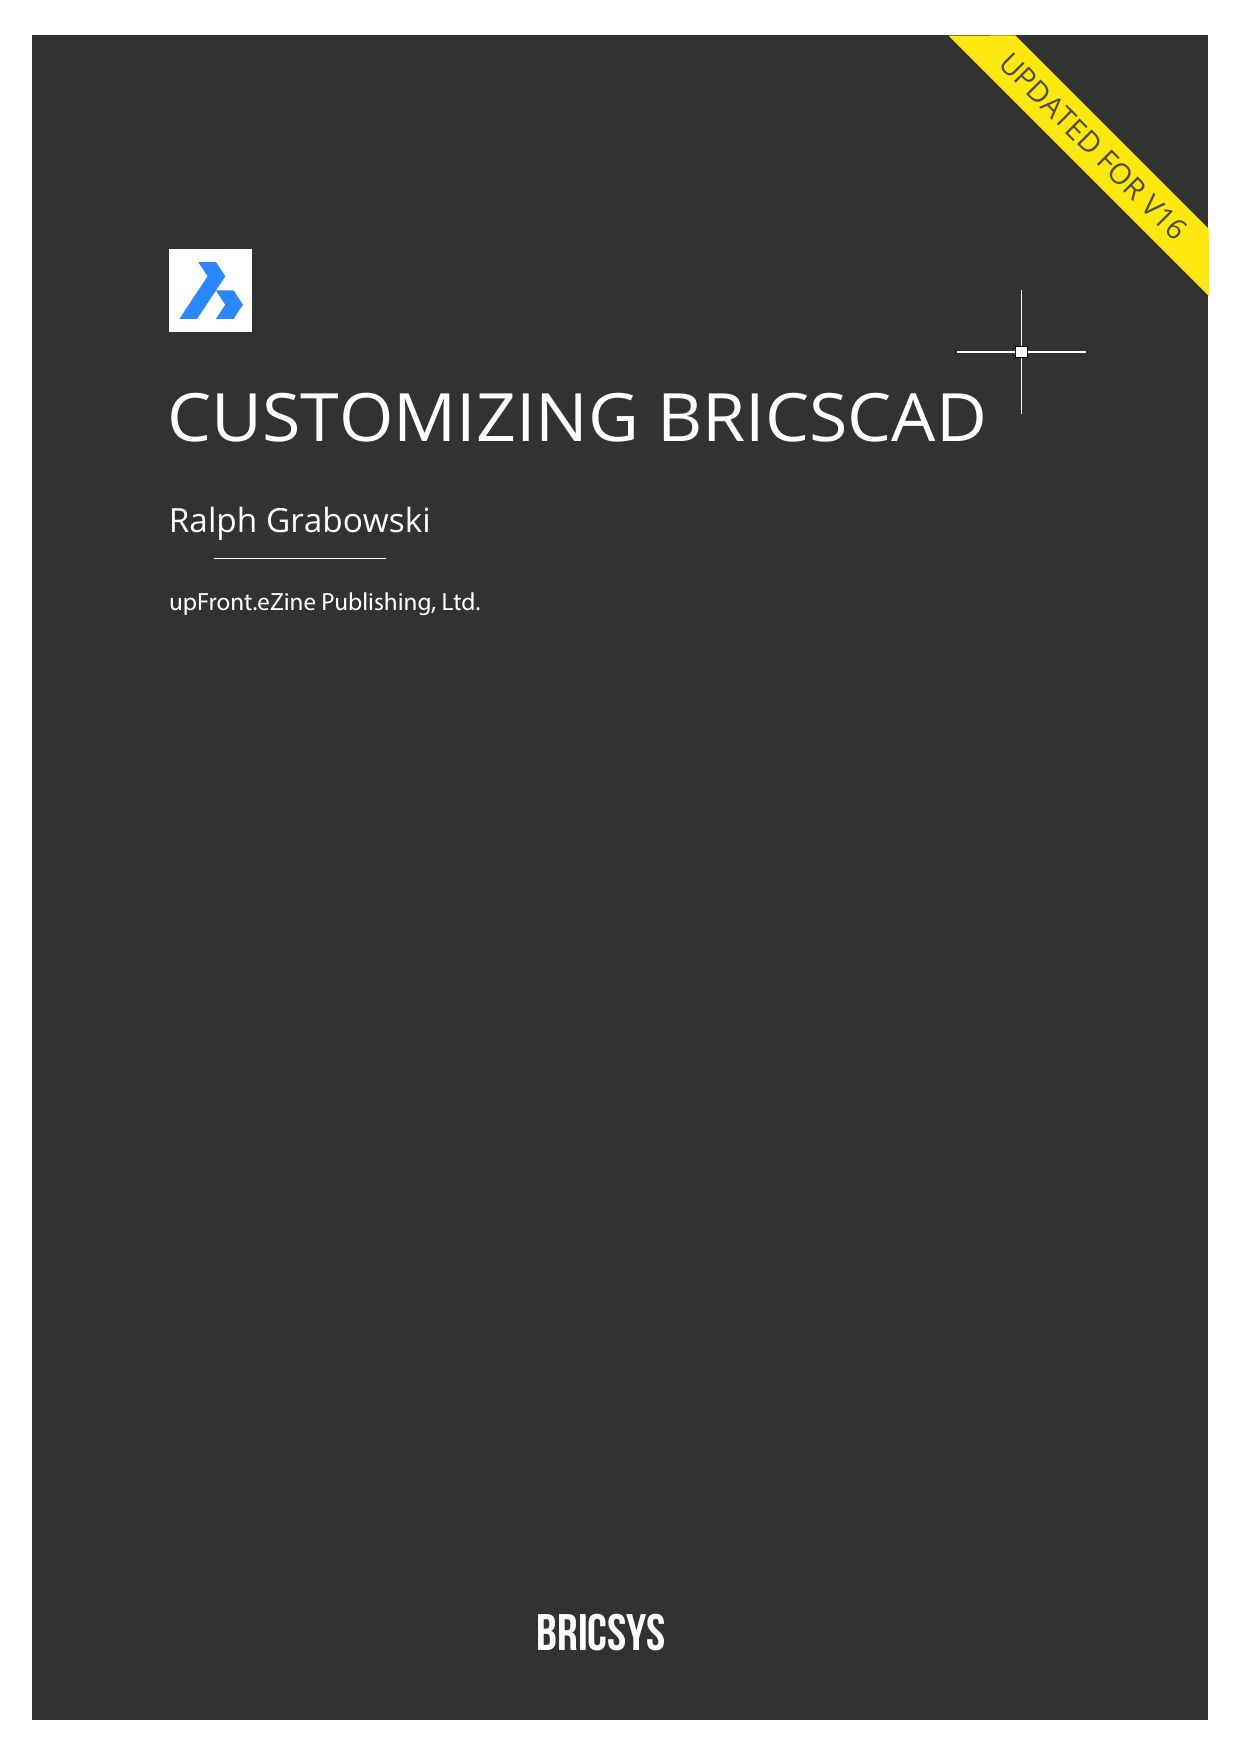 Start An Ezine Customizing Bricscad